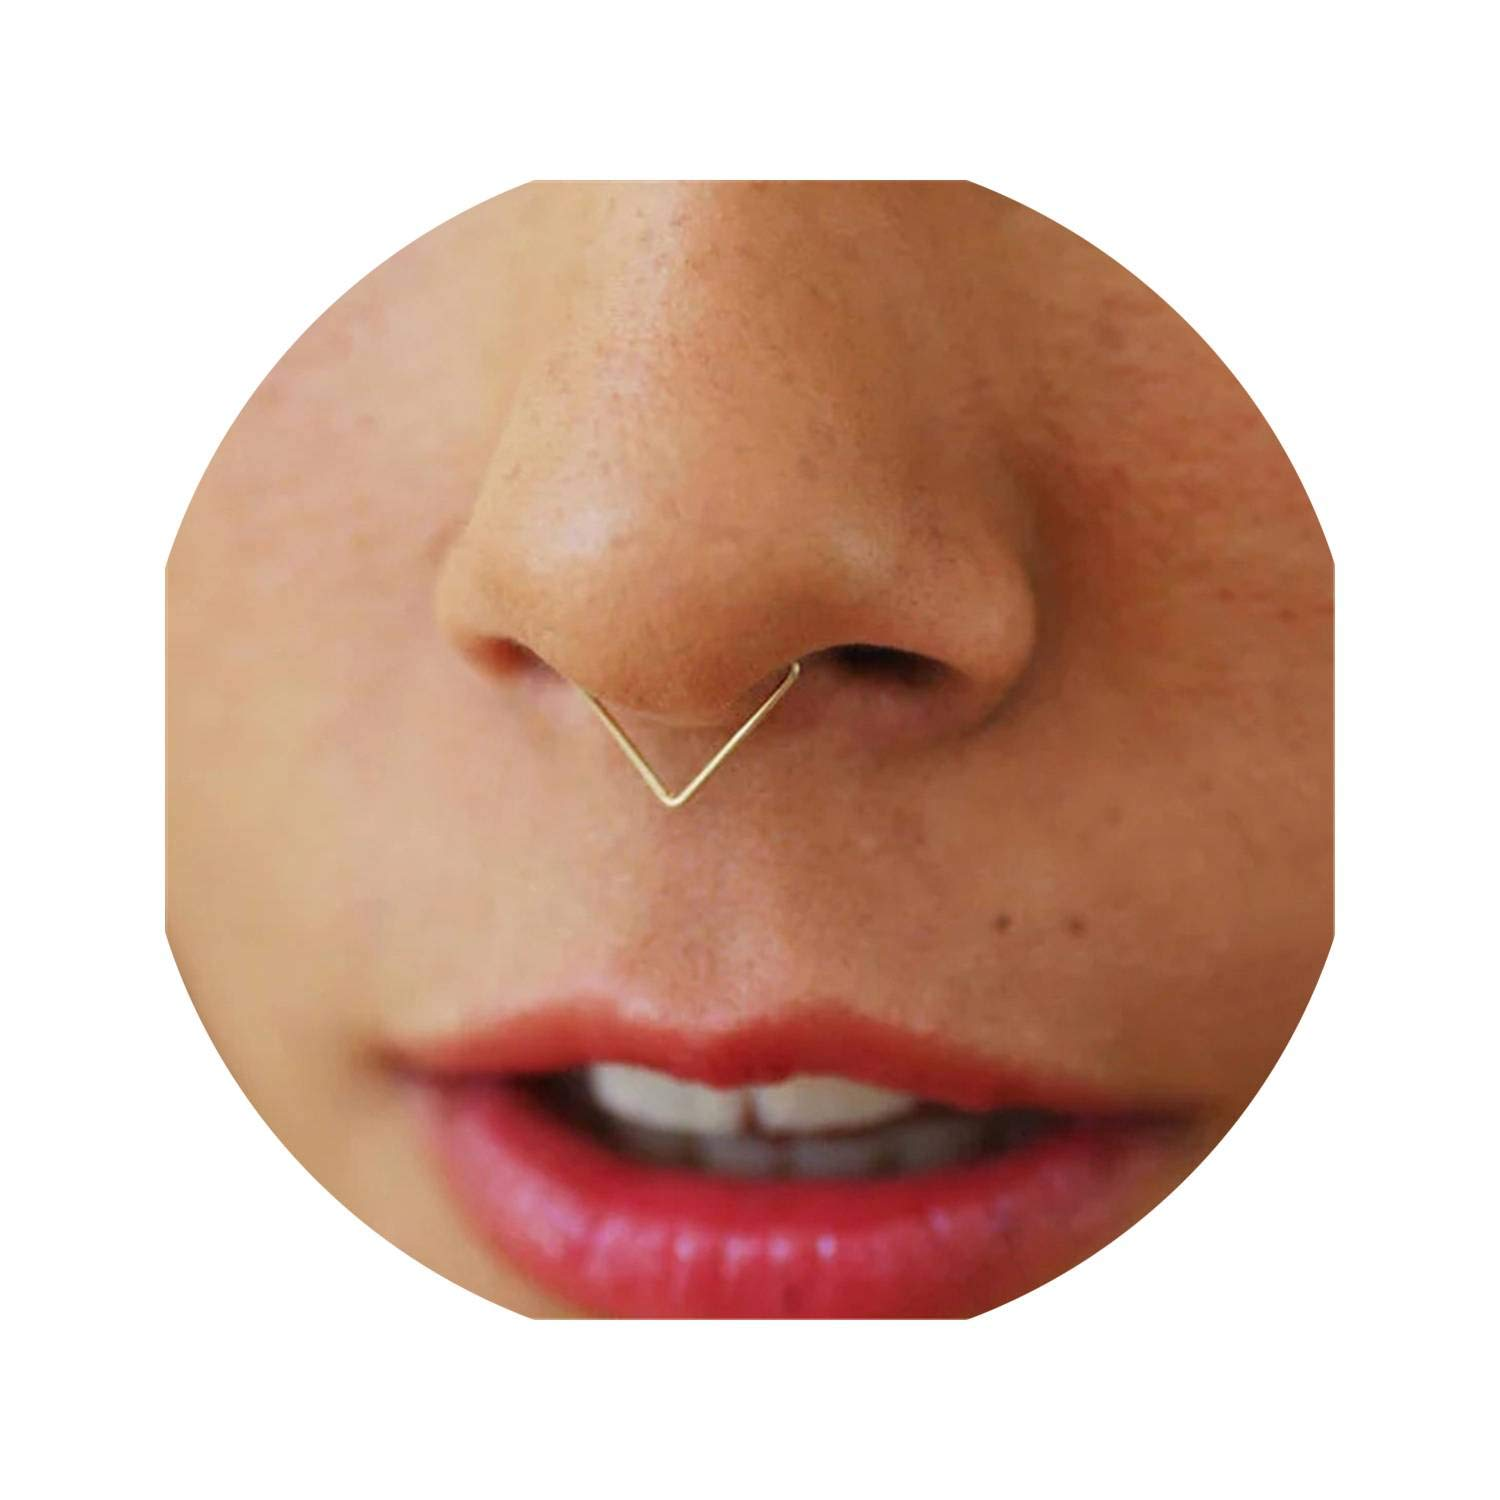 Lotus leaf fragrance Nose Ring Handmade Piercing Jewelry Triangle Surface Punk Charm Circular Tiny Septum Hoop Jewelry Grillz Fake Piercing,14k Gold Filling